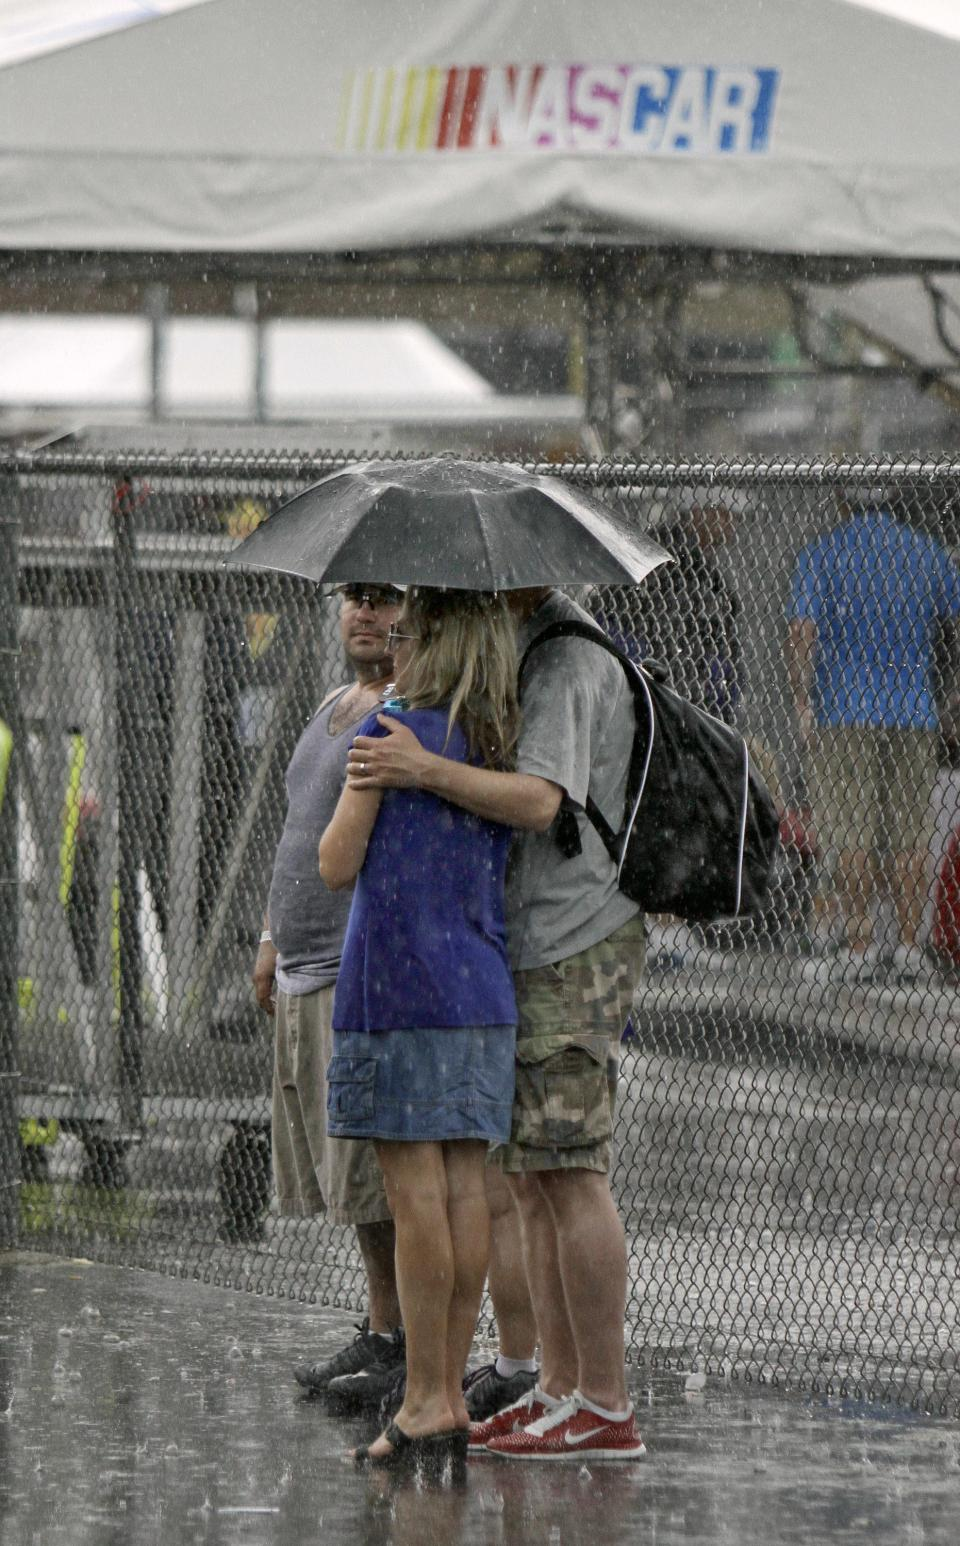 Fans huddle under an umbrella in the rain before scheduled start of the NASCAR Sprint Cup auto race at Kentucky Speedway in Sparta, Ky., Saturday, June 29, 2013. (AP Photo/Garry Jones)